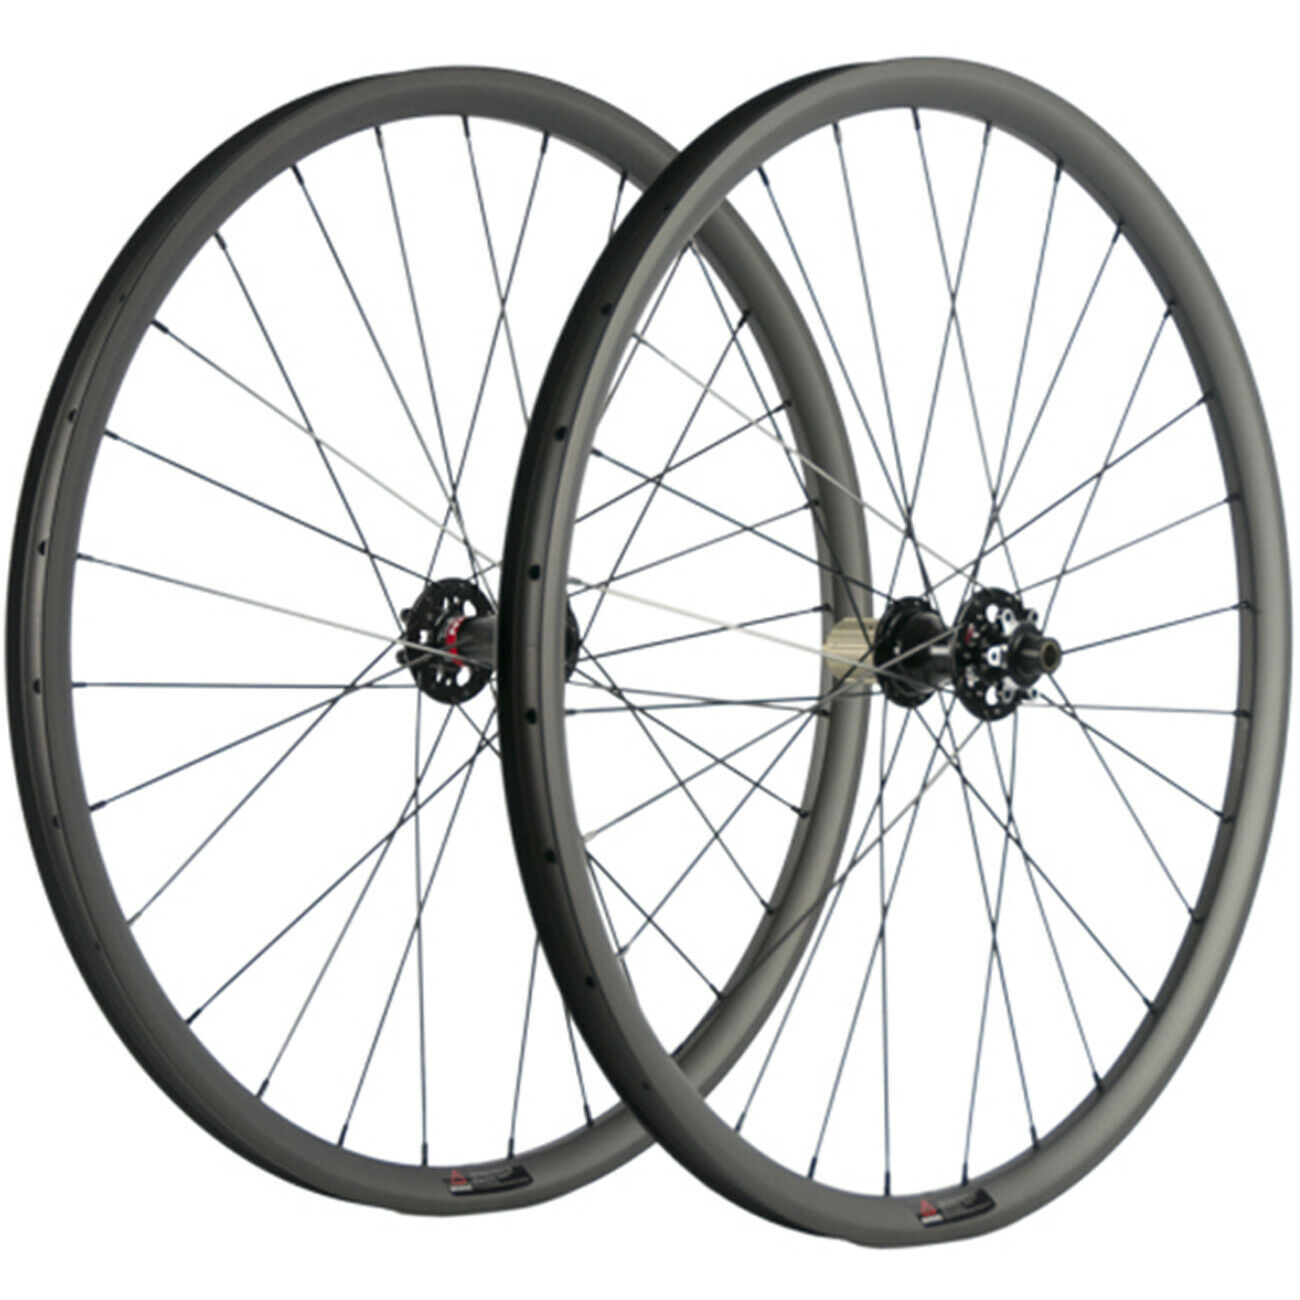 27.5ER Carbon Cyclocross Wheelset Tubeless MTB Disc Brake Wheels Thru Axle 15mm